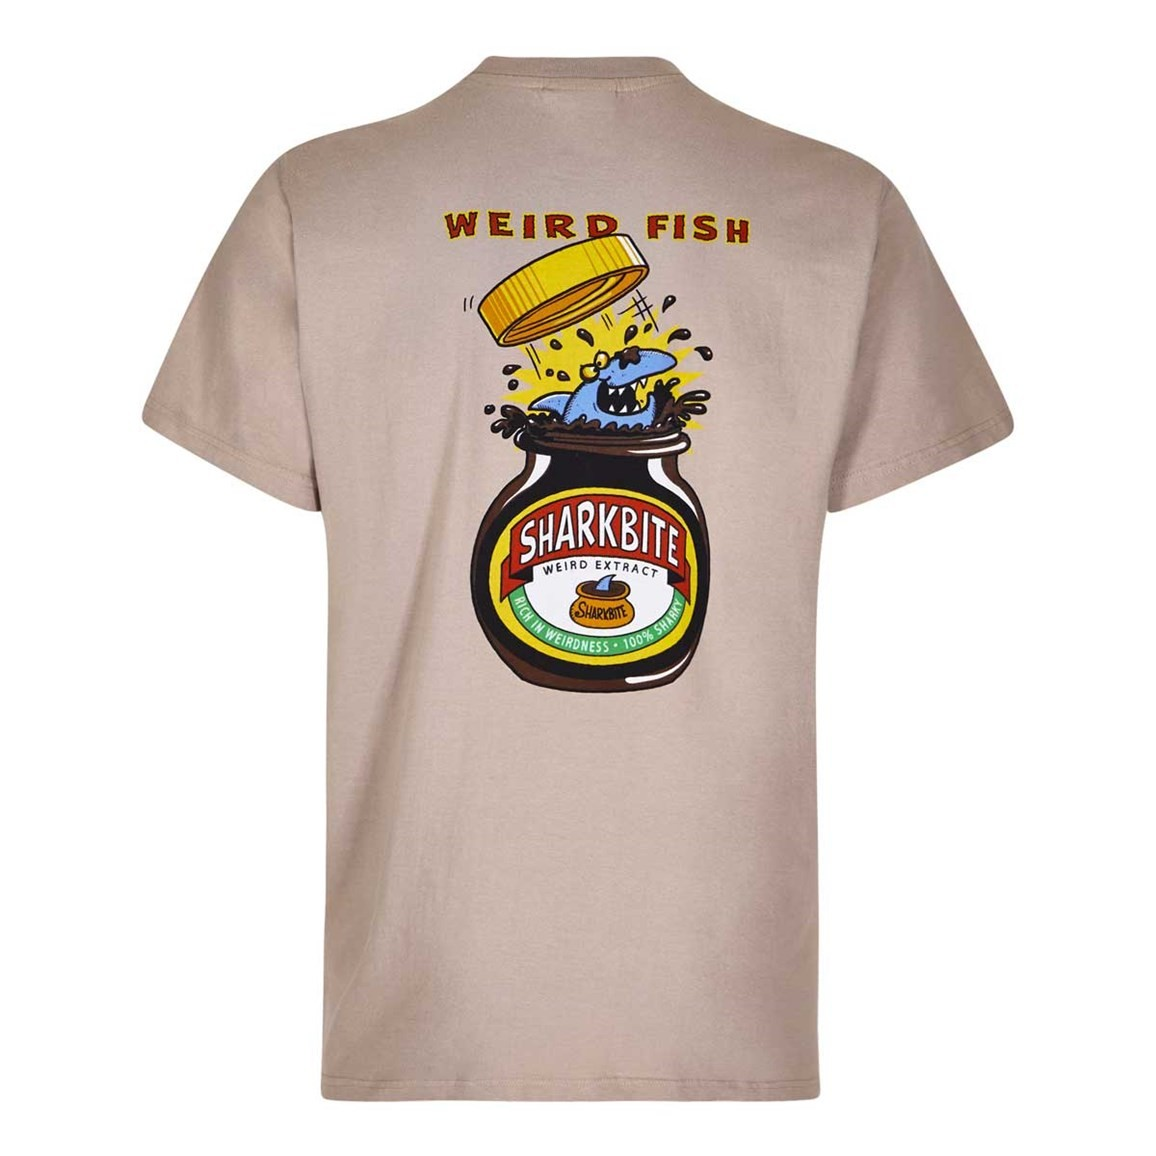 Weird Fish Shark Bite Printed Artist T-Shirt String